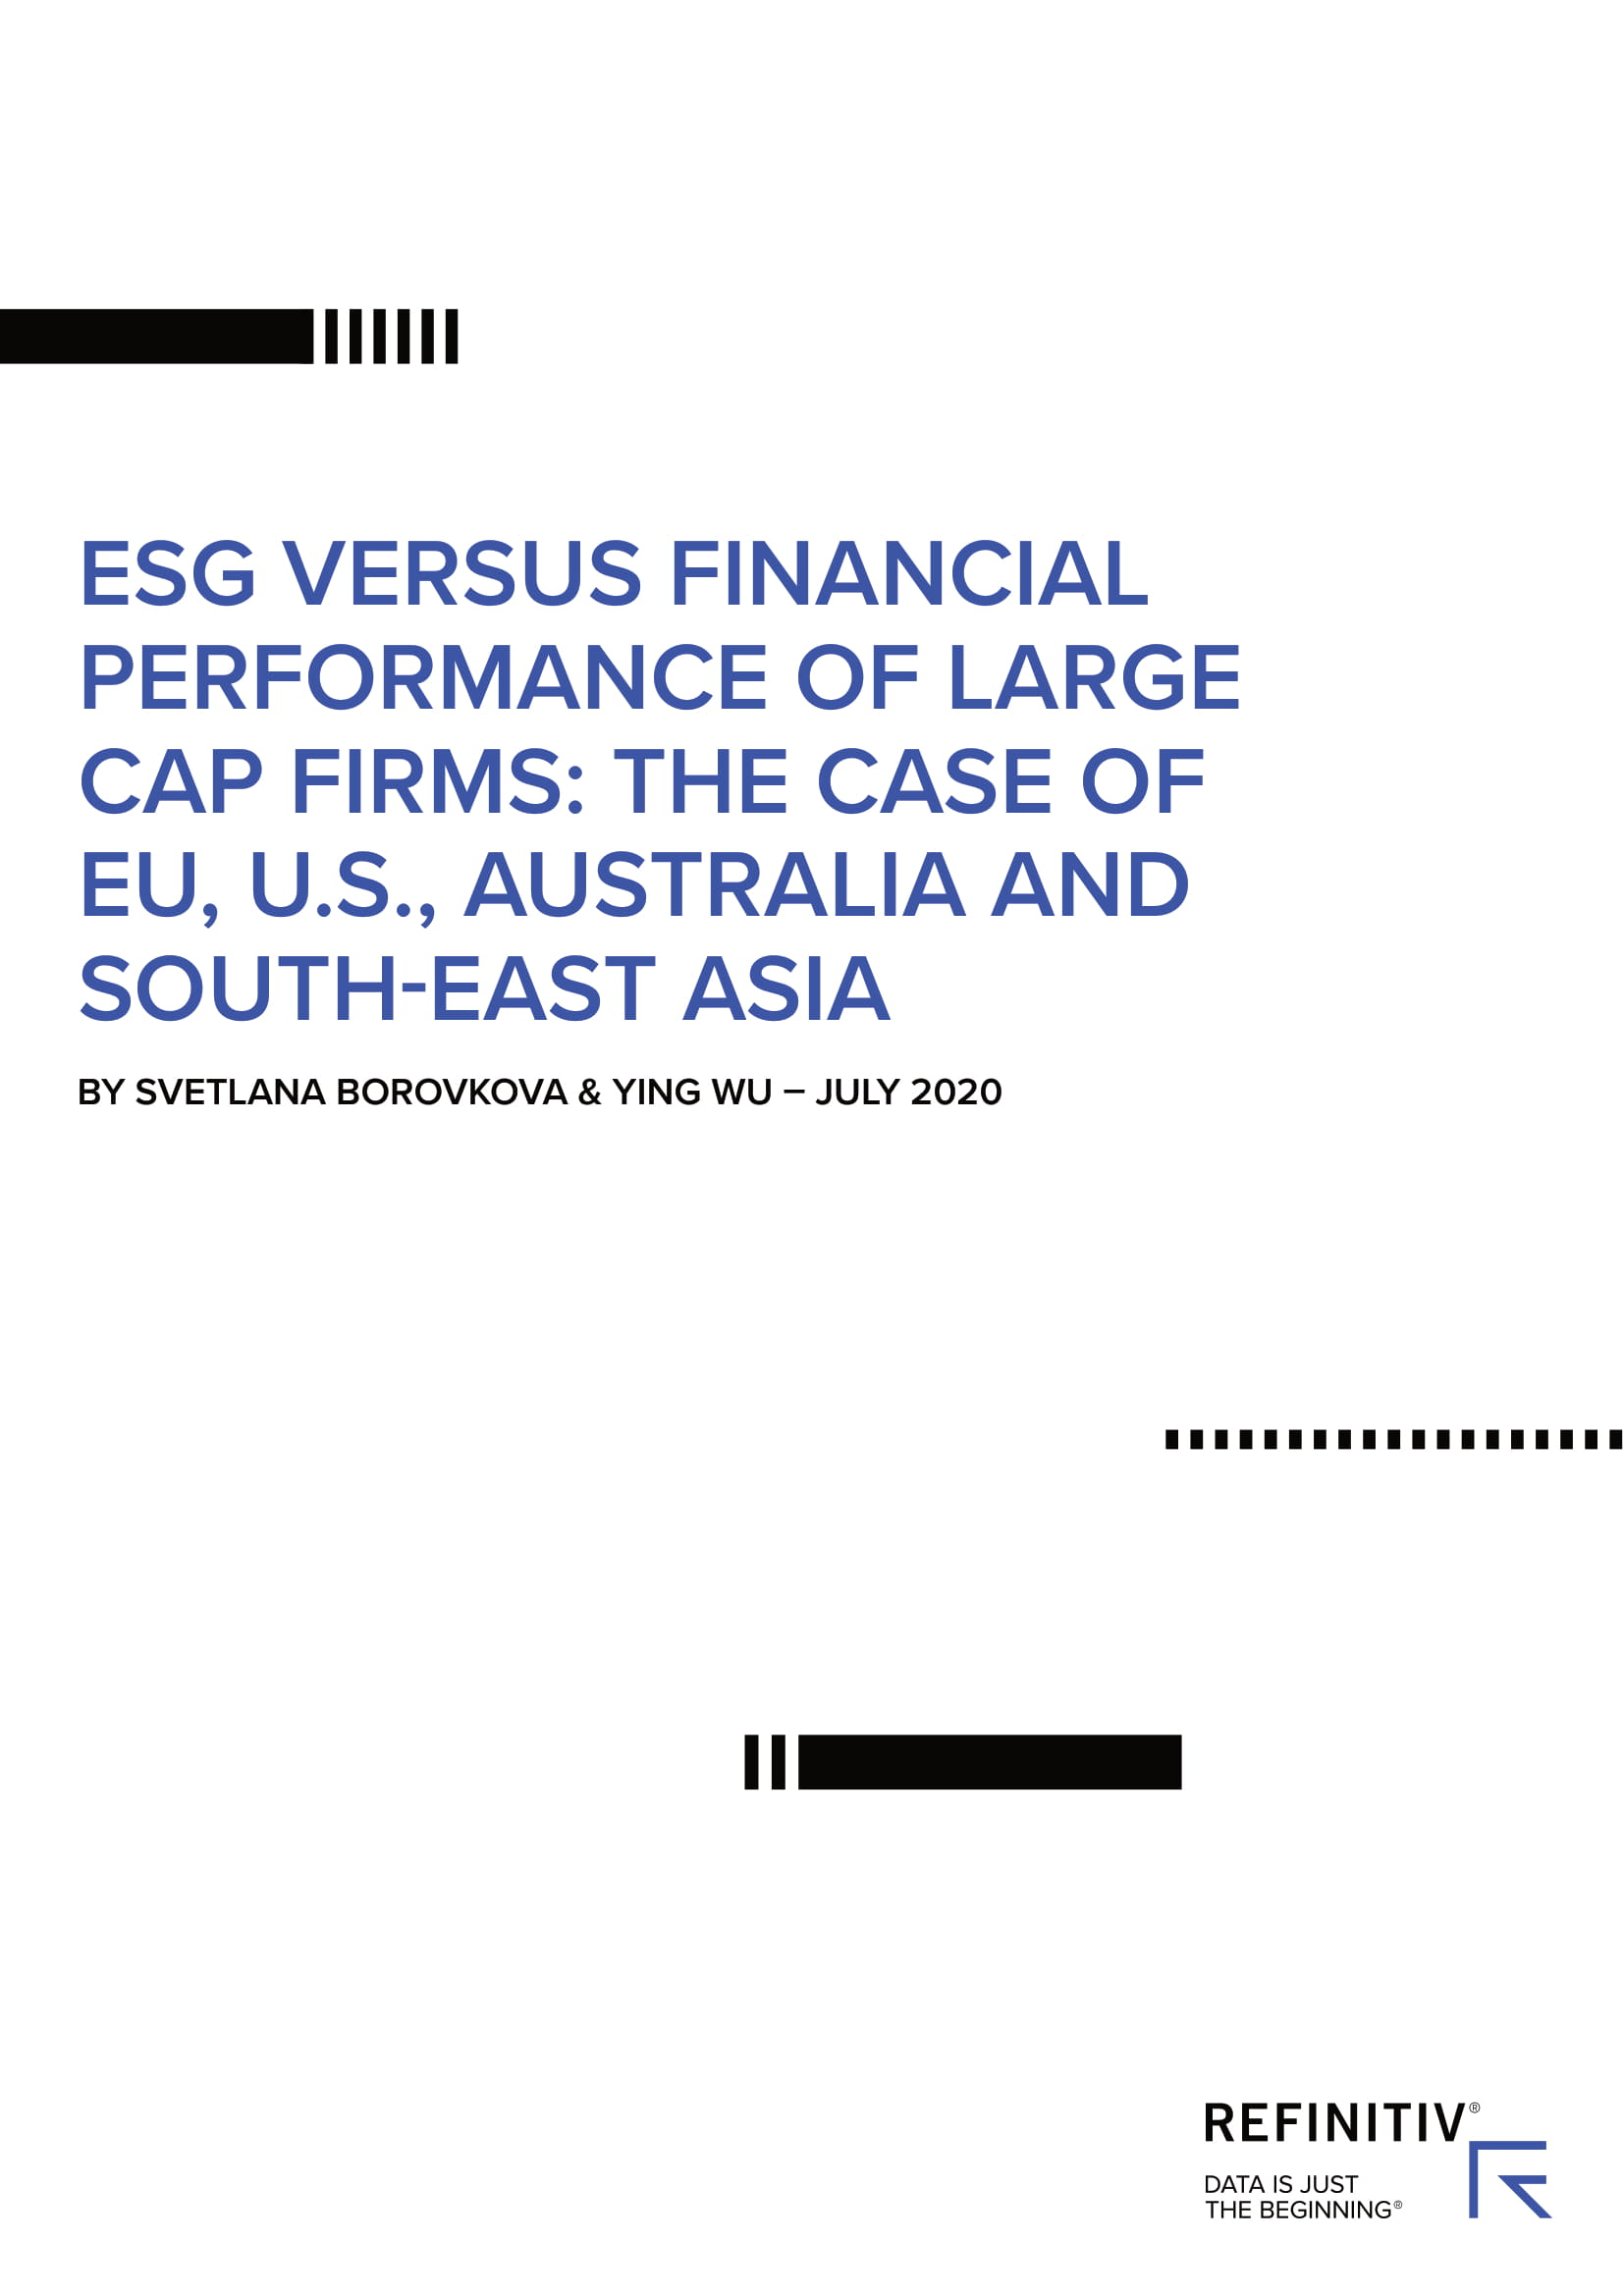 ESG vs Financial performance of large cap firms 01